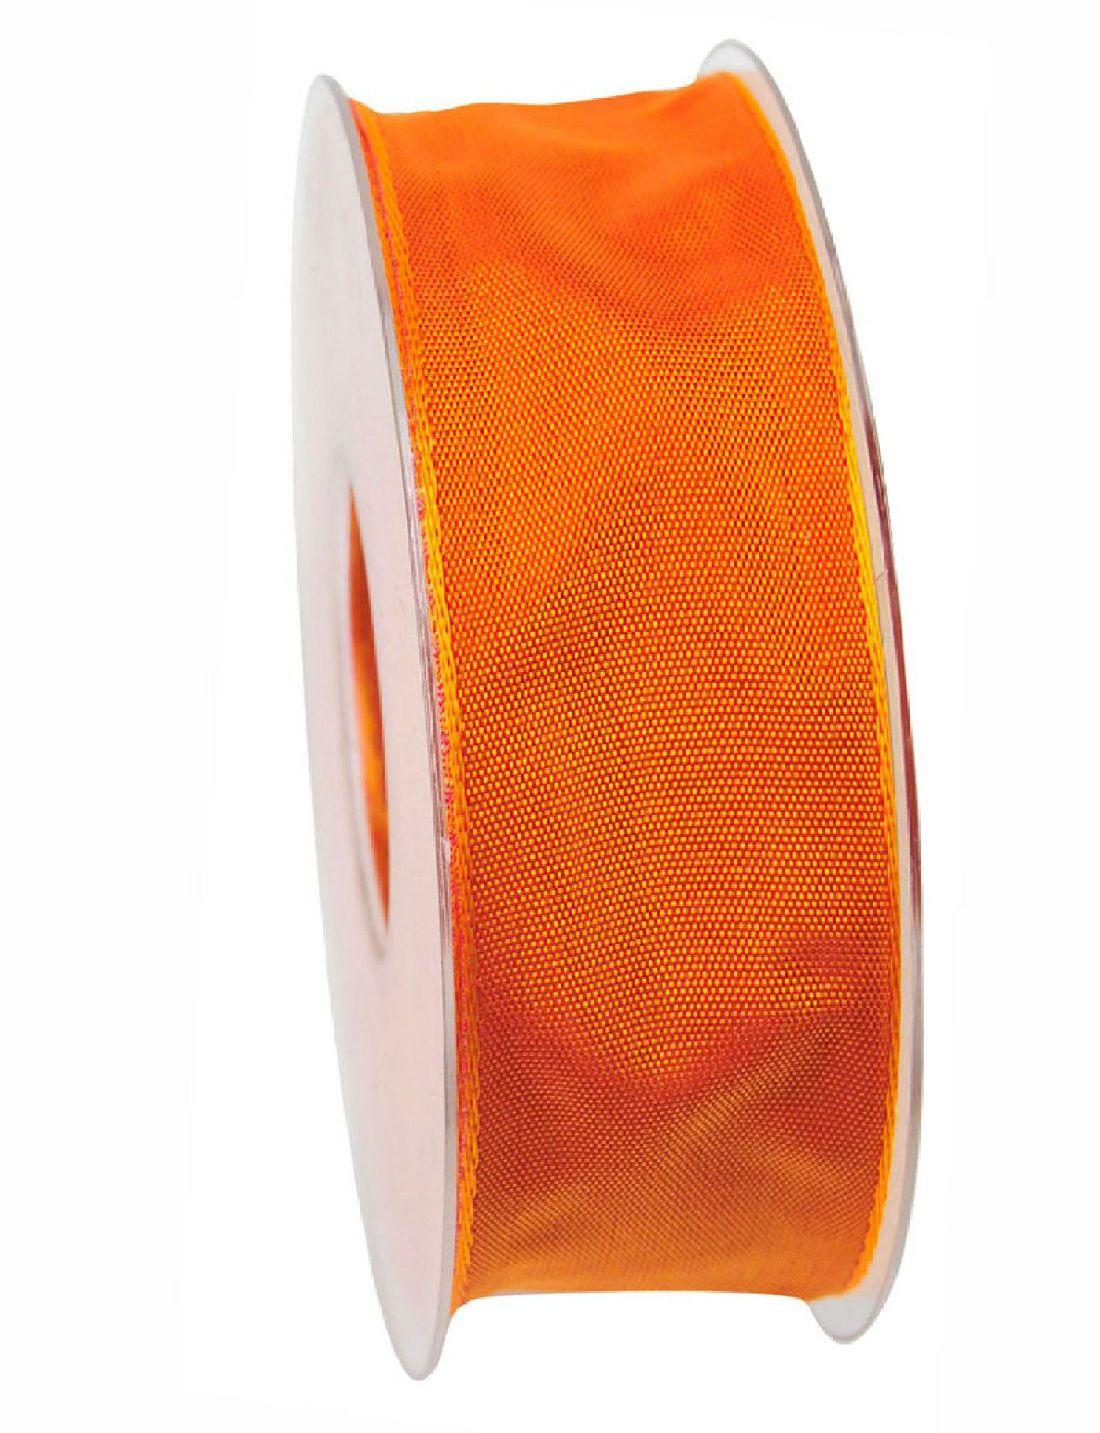 Drahtkantenband ORANGE 40 40mm 25m